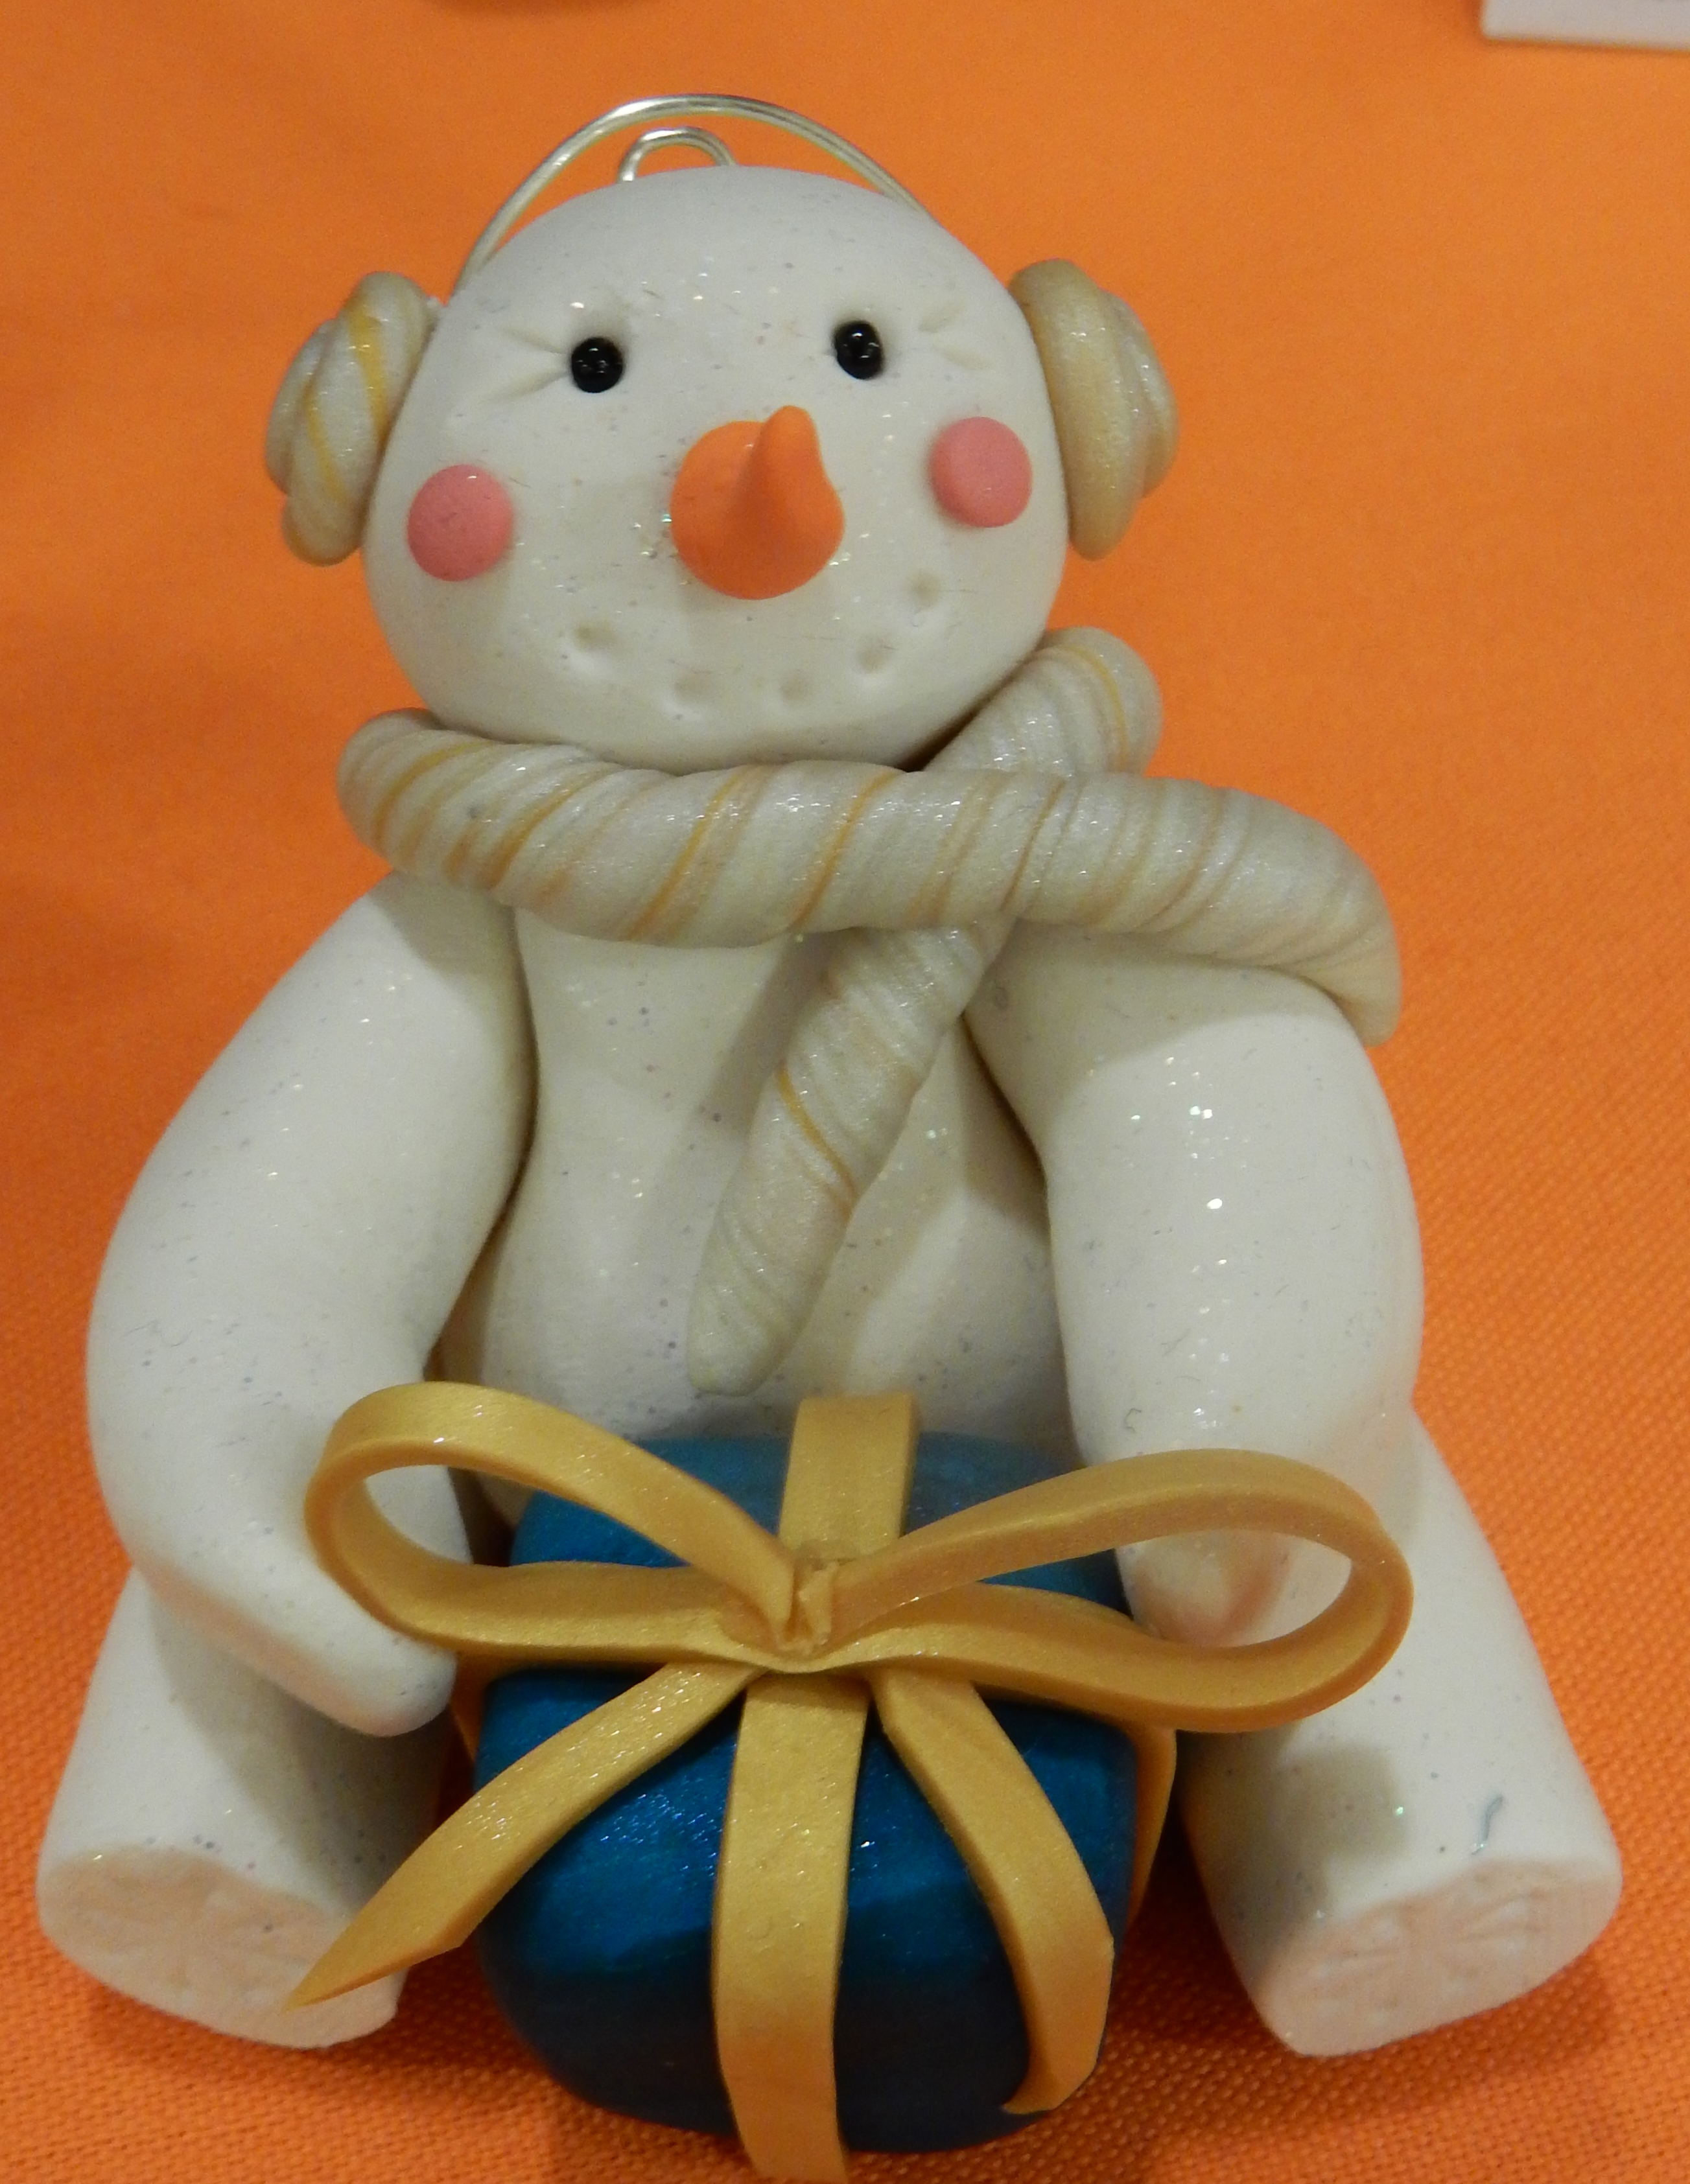 snowman with blue present and scarf